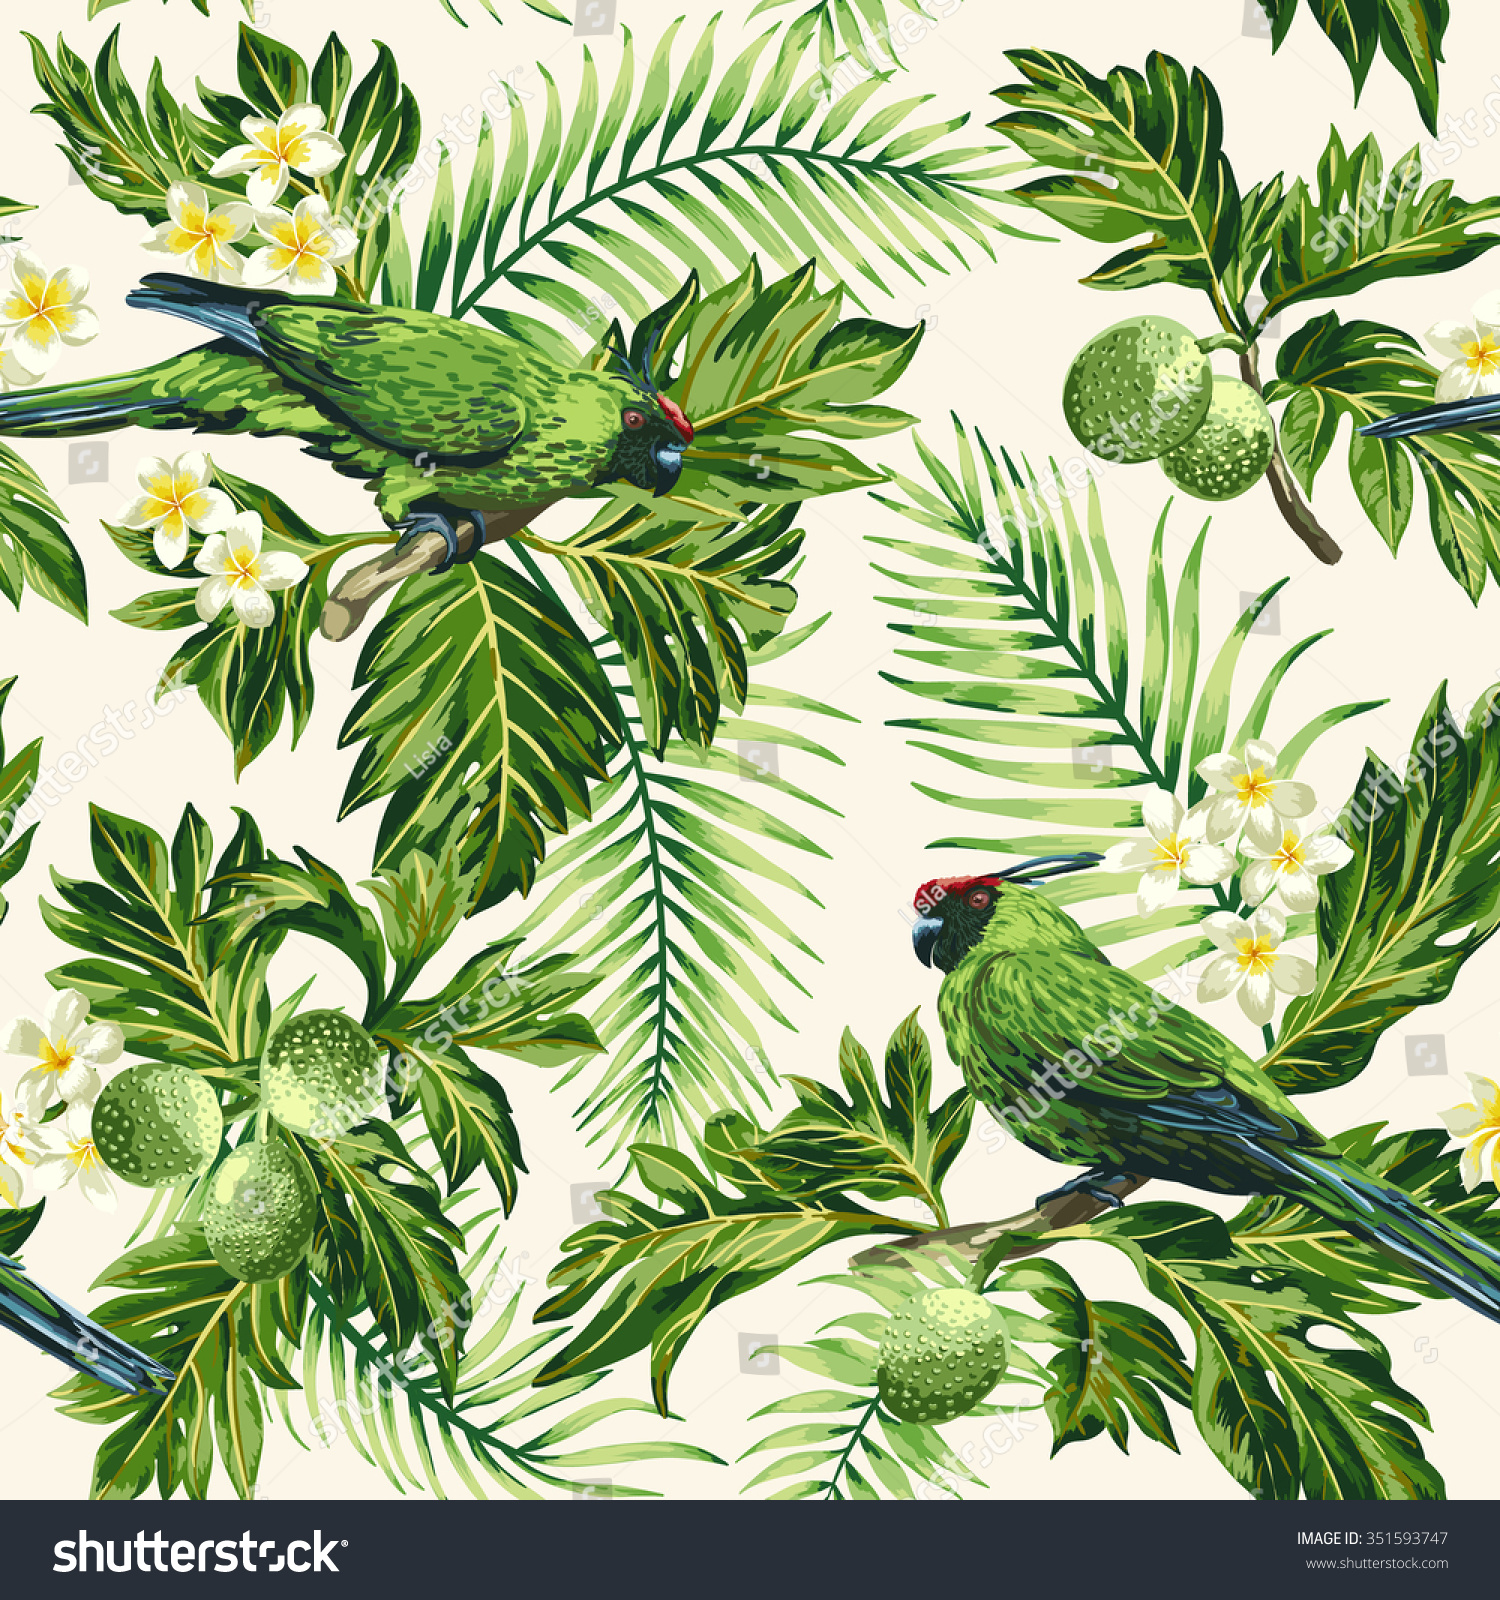 wallpaper tropical birds and foliage - photo #7